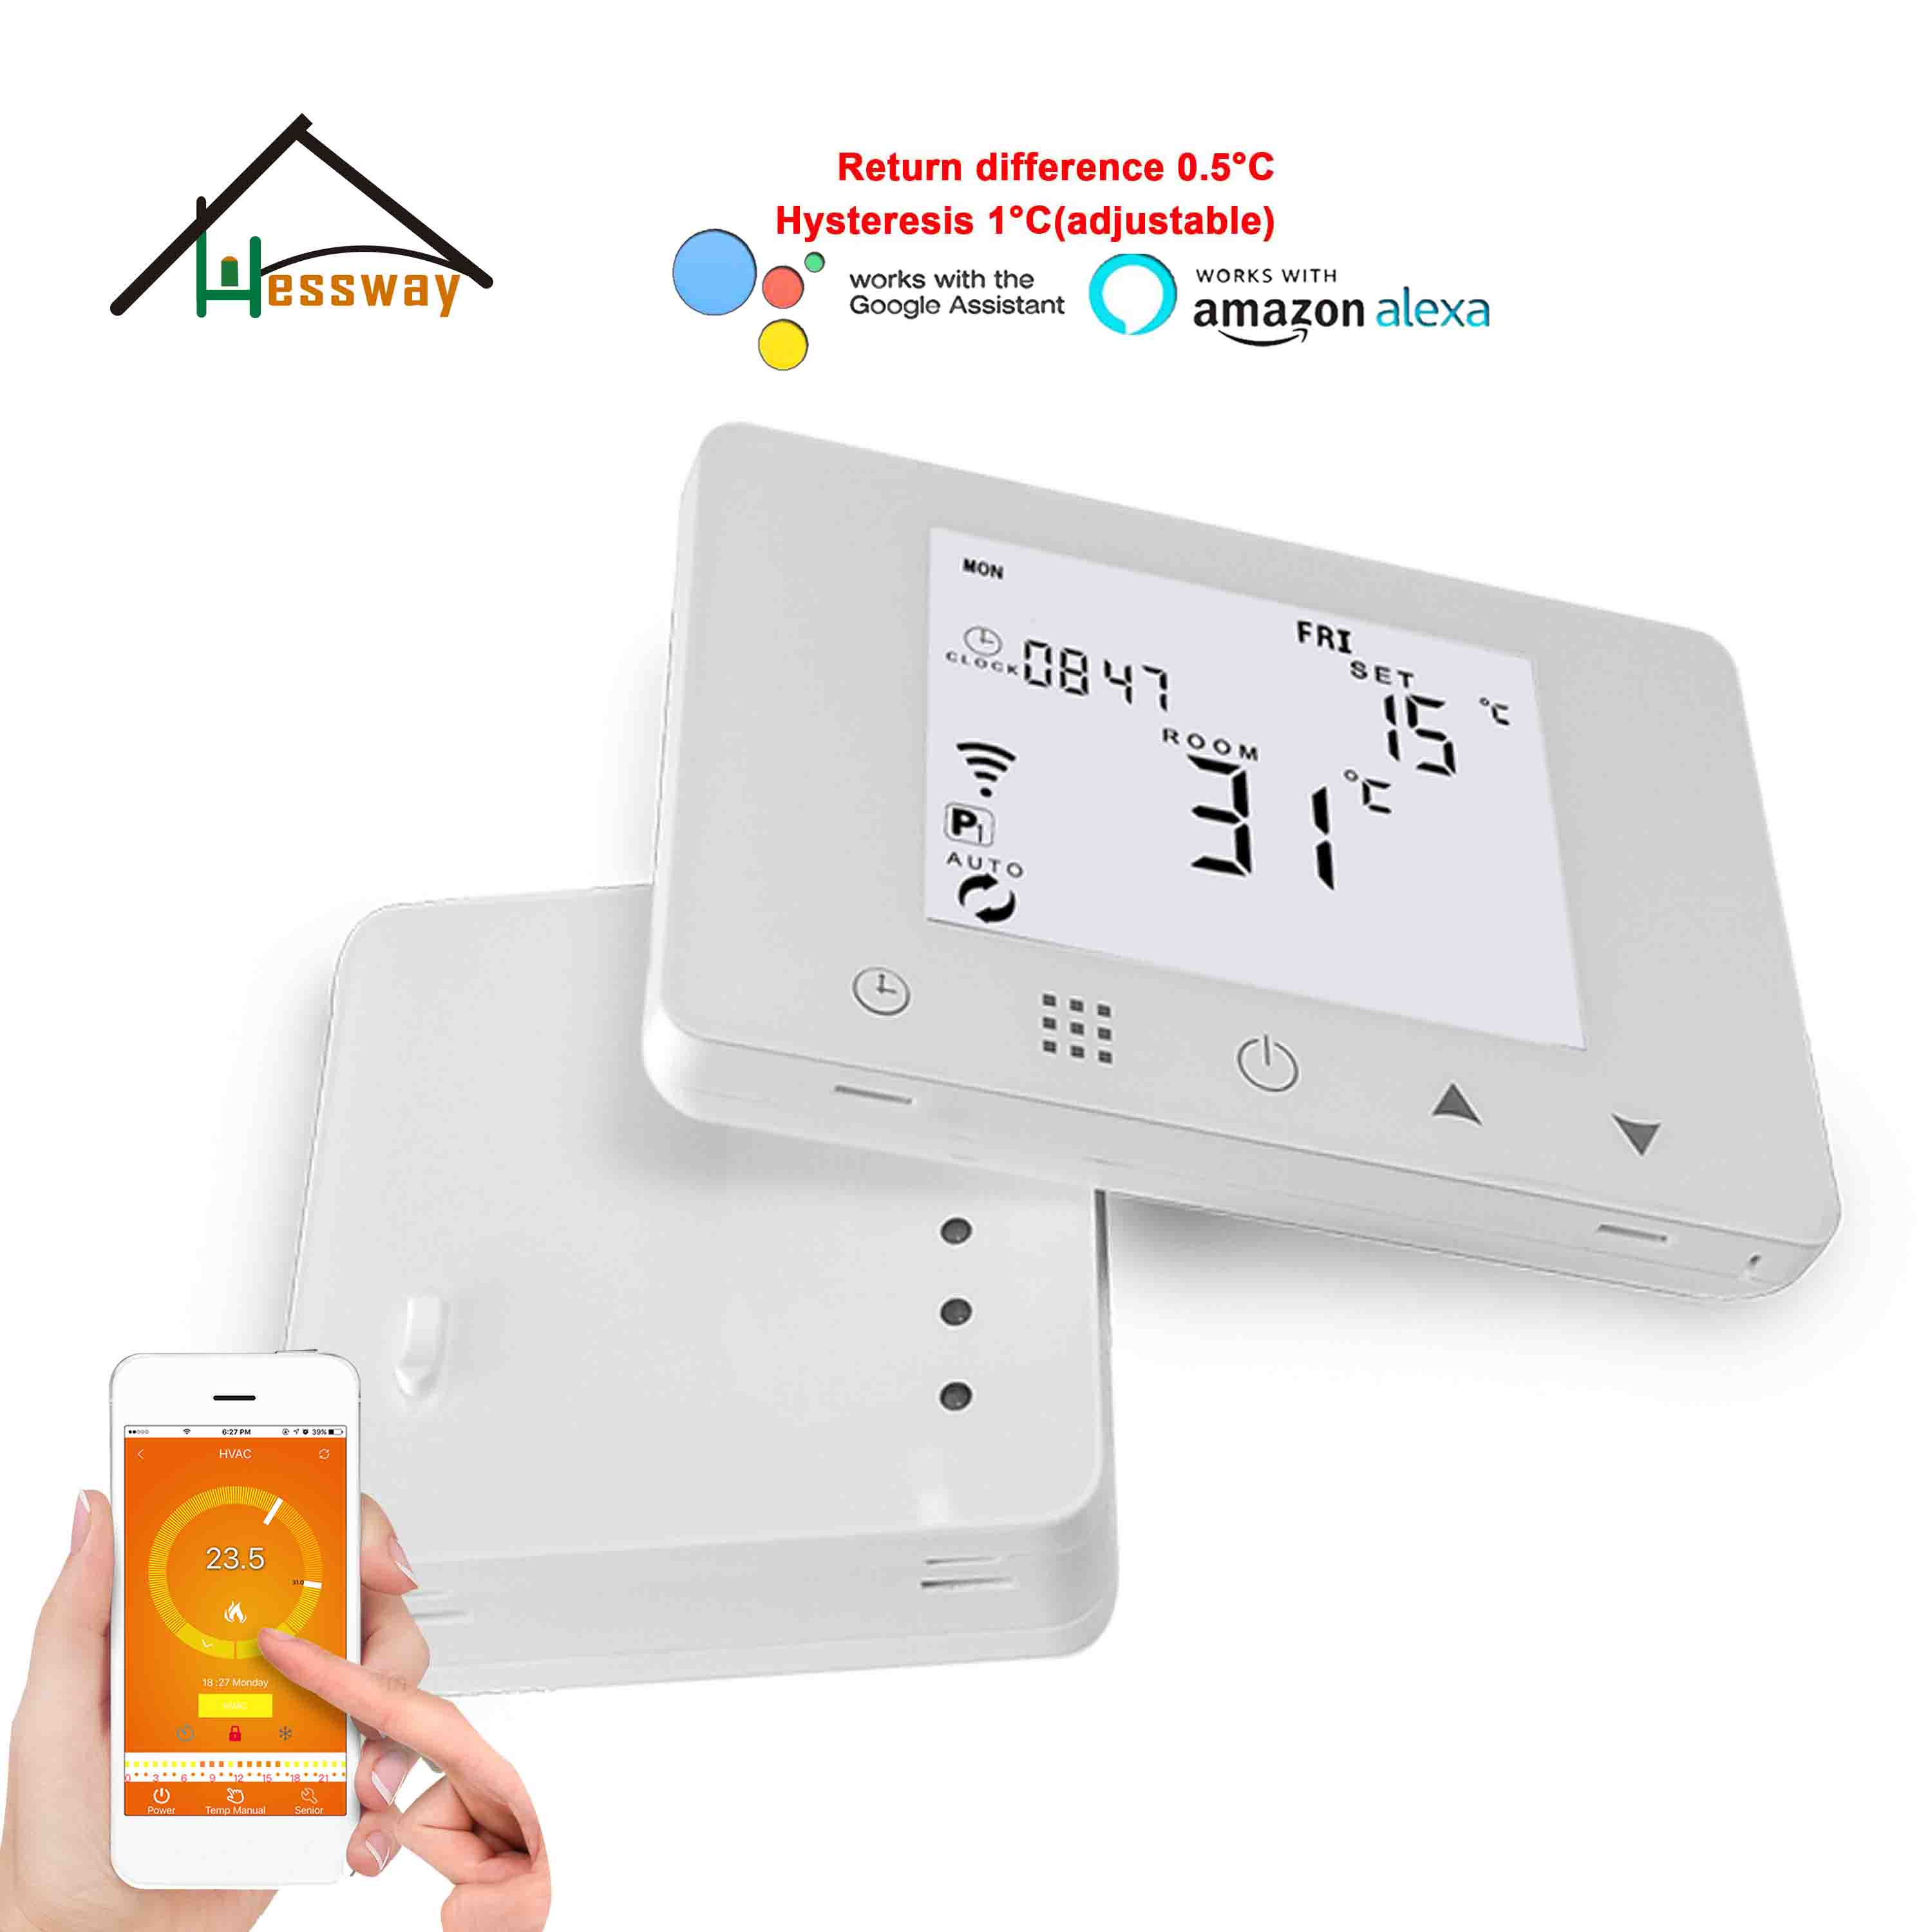 HESSWAY TUYA 433mhz Wifi & Rf Wireless Room Thermostat For Heating System Temperature Controller